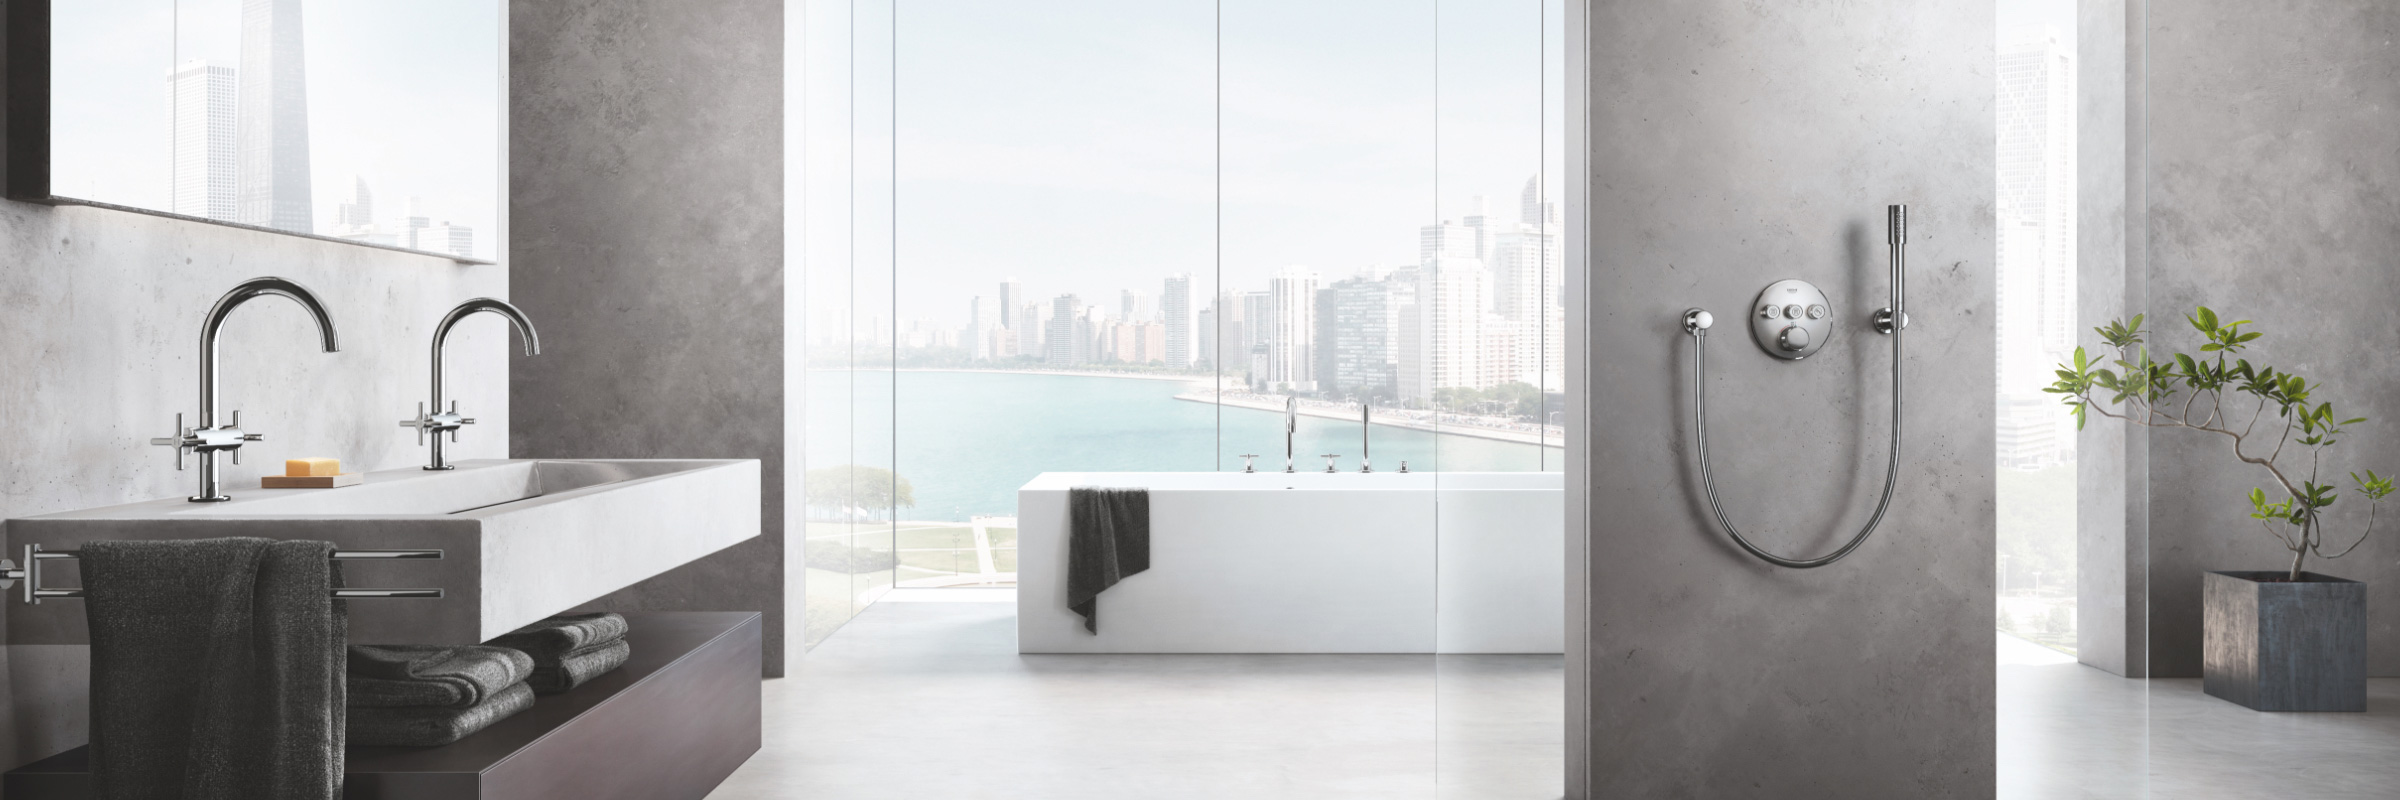 Bathroom concept with double sinks, shower and tub